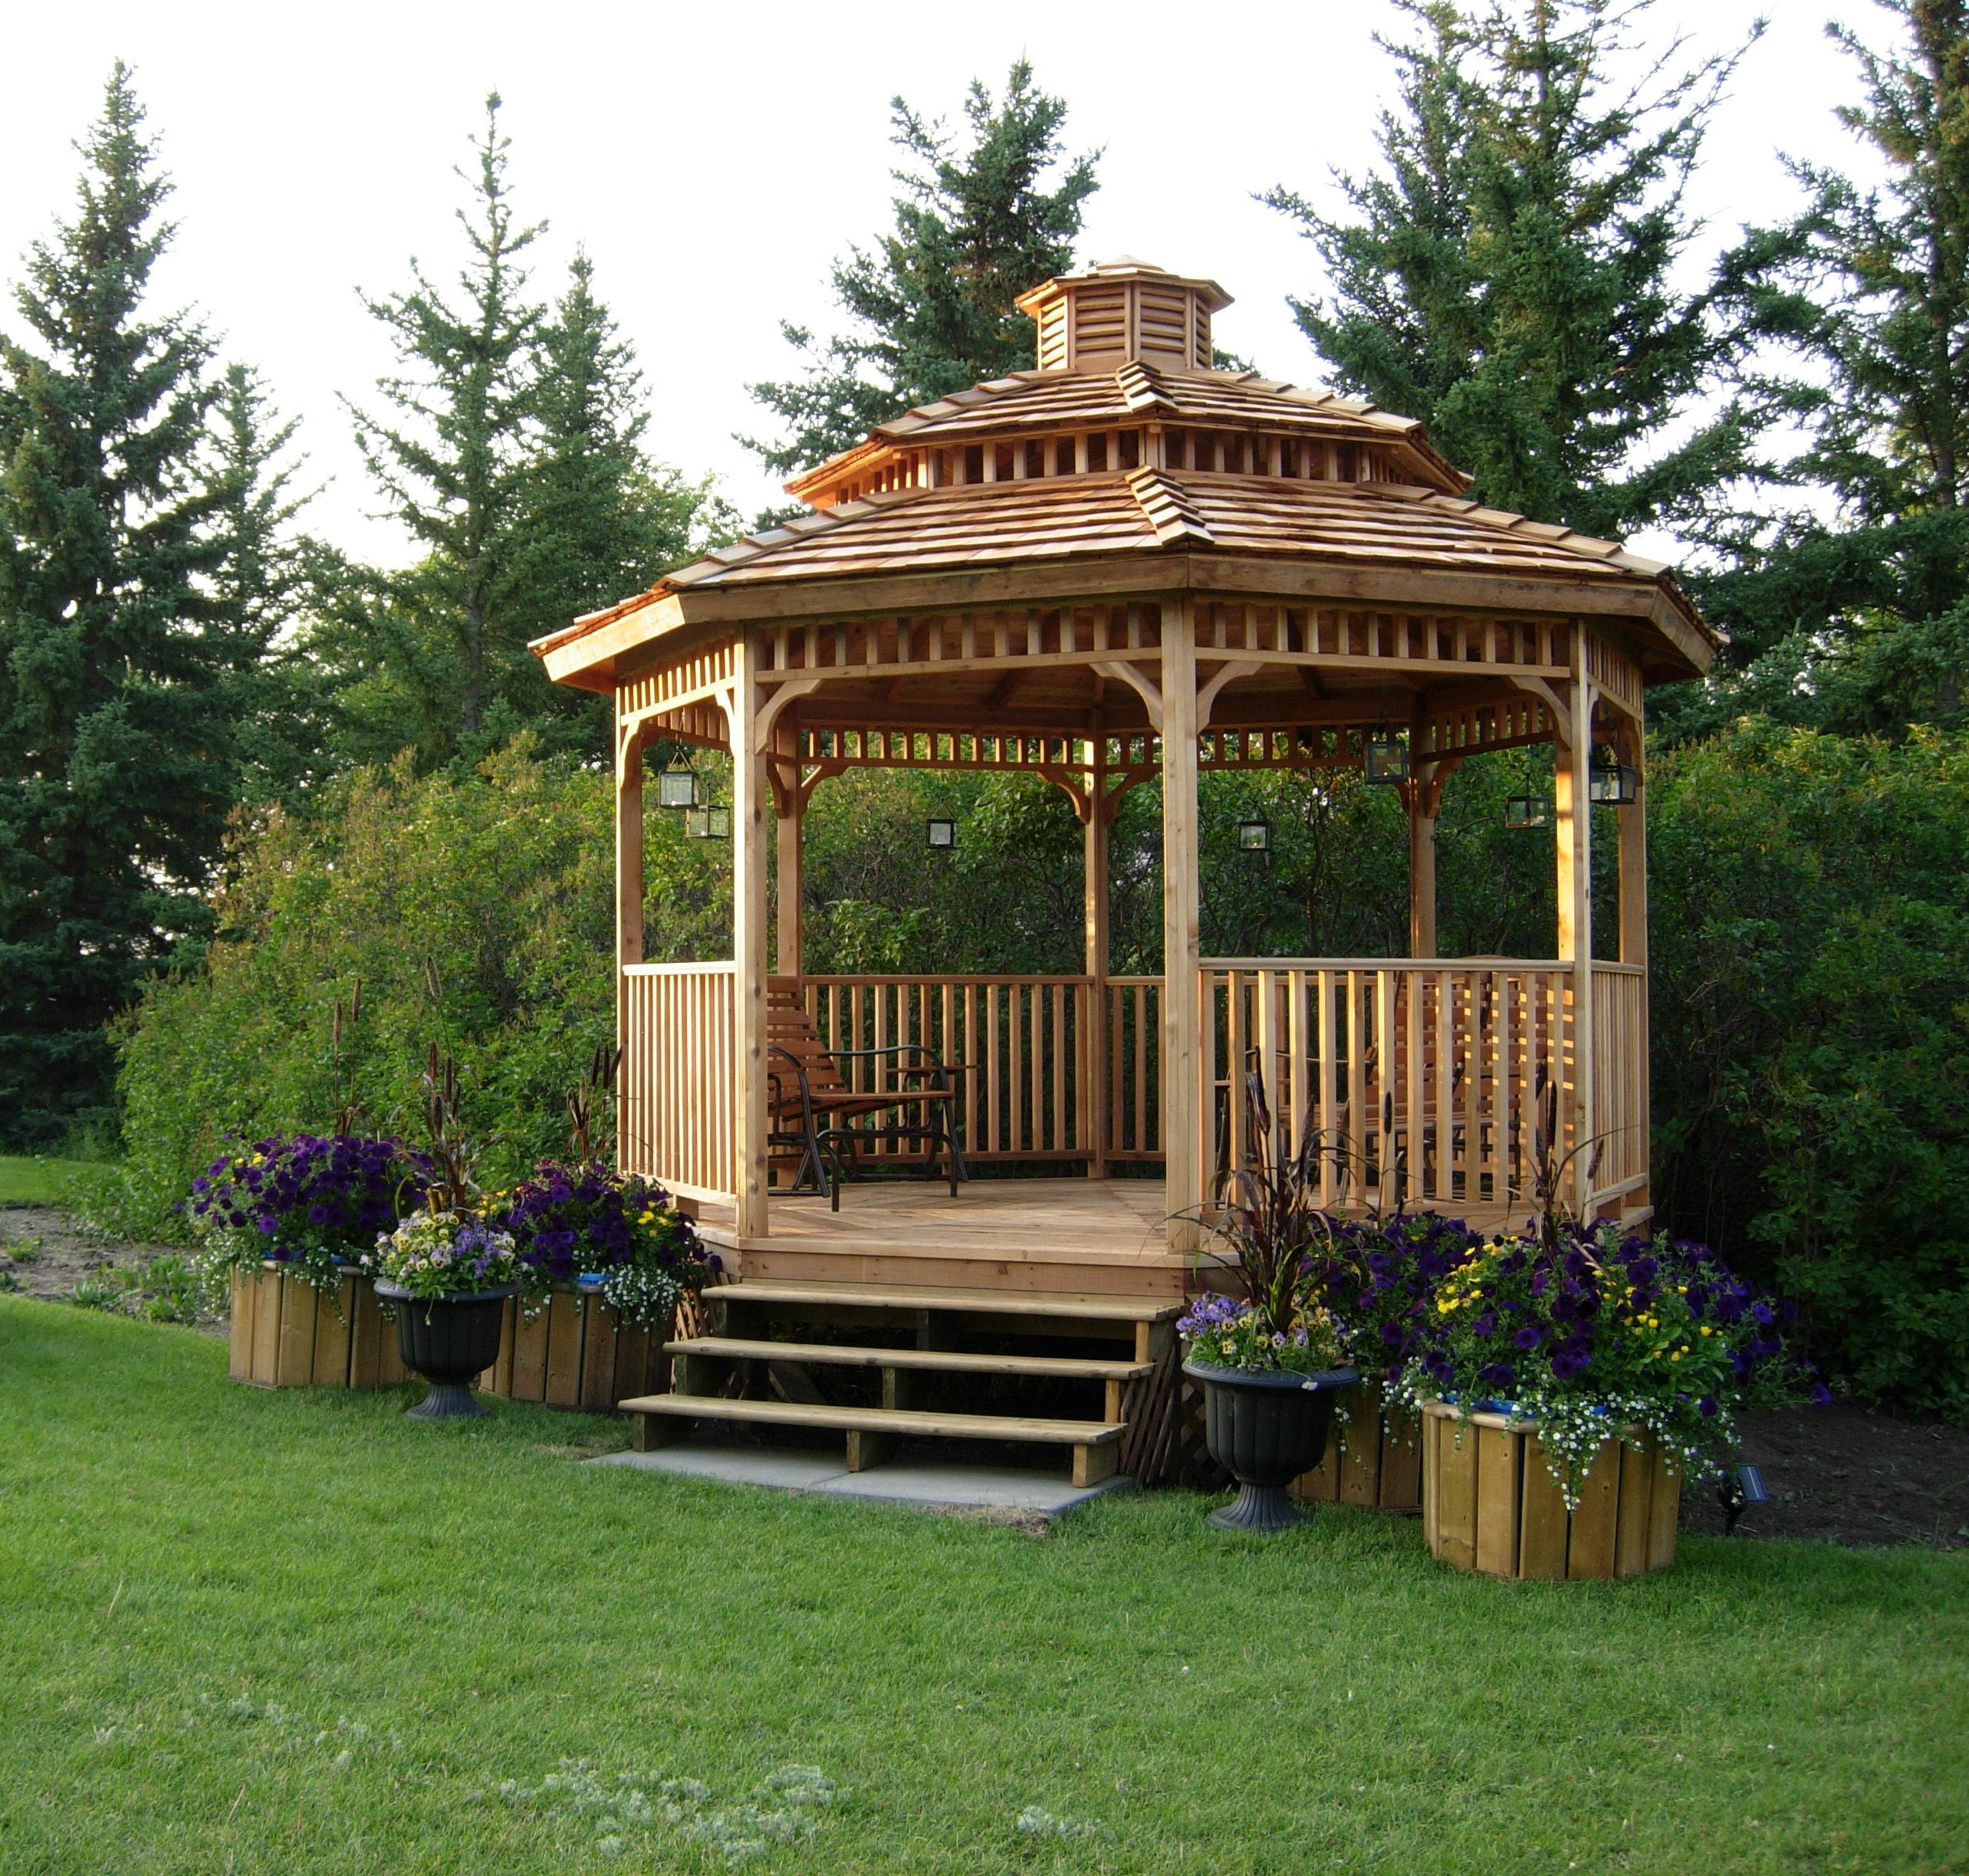 Remodel Your Backyard Too And Enjoy New Outdoor Living Space In A